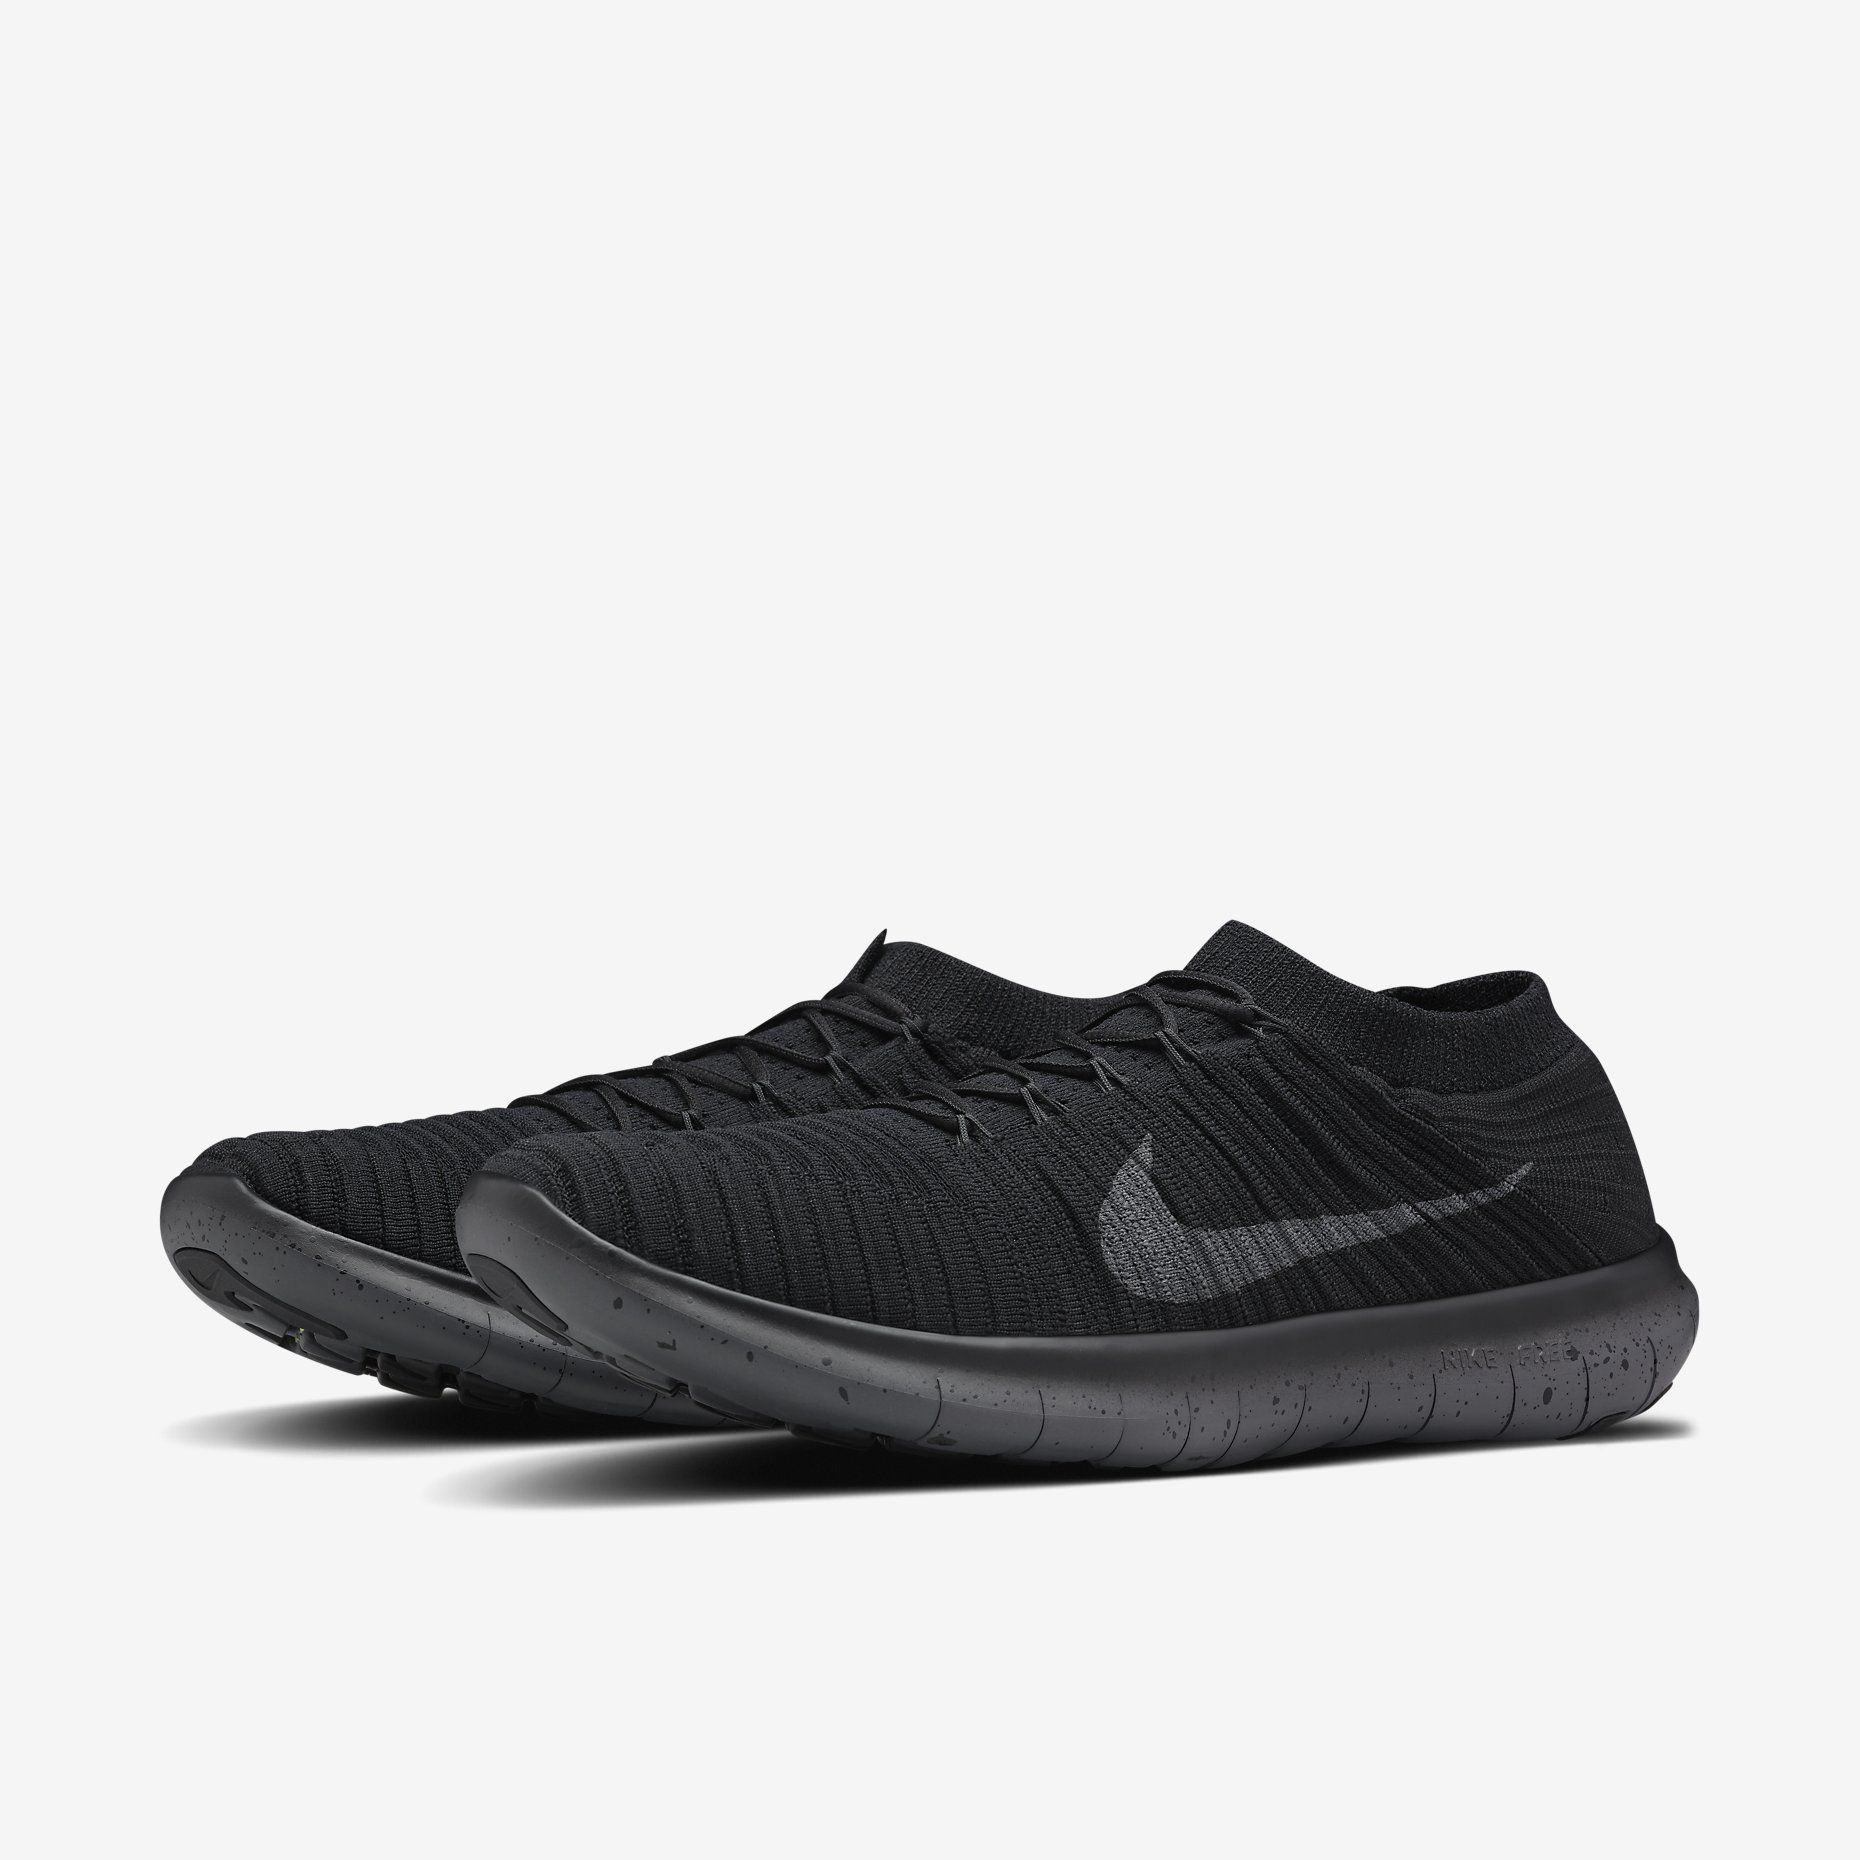 Running shoes · Nikelab Free Rn Motion Flyknit